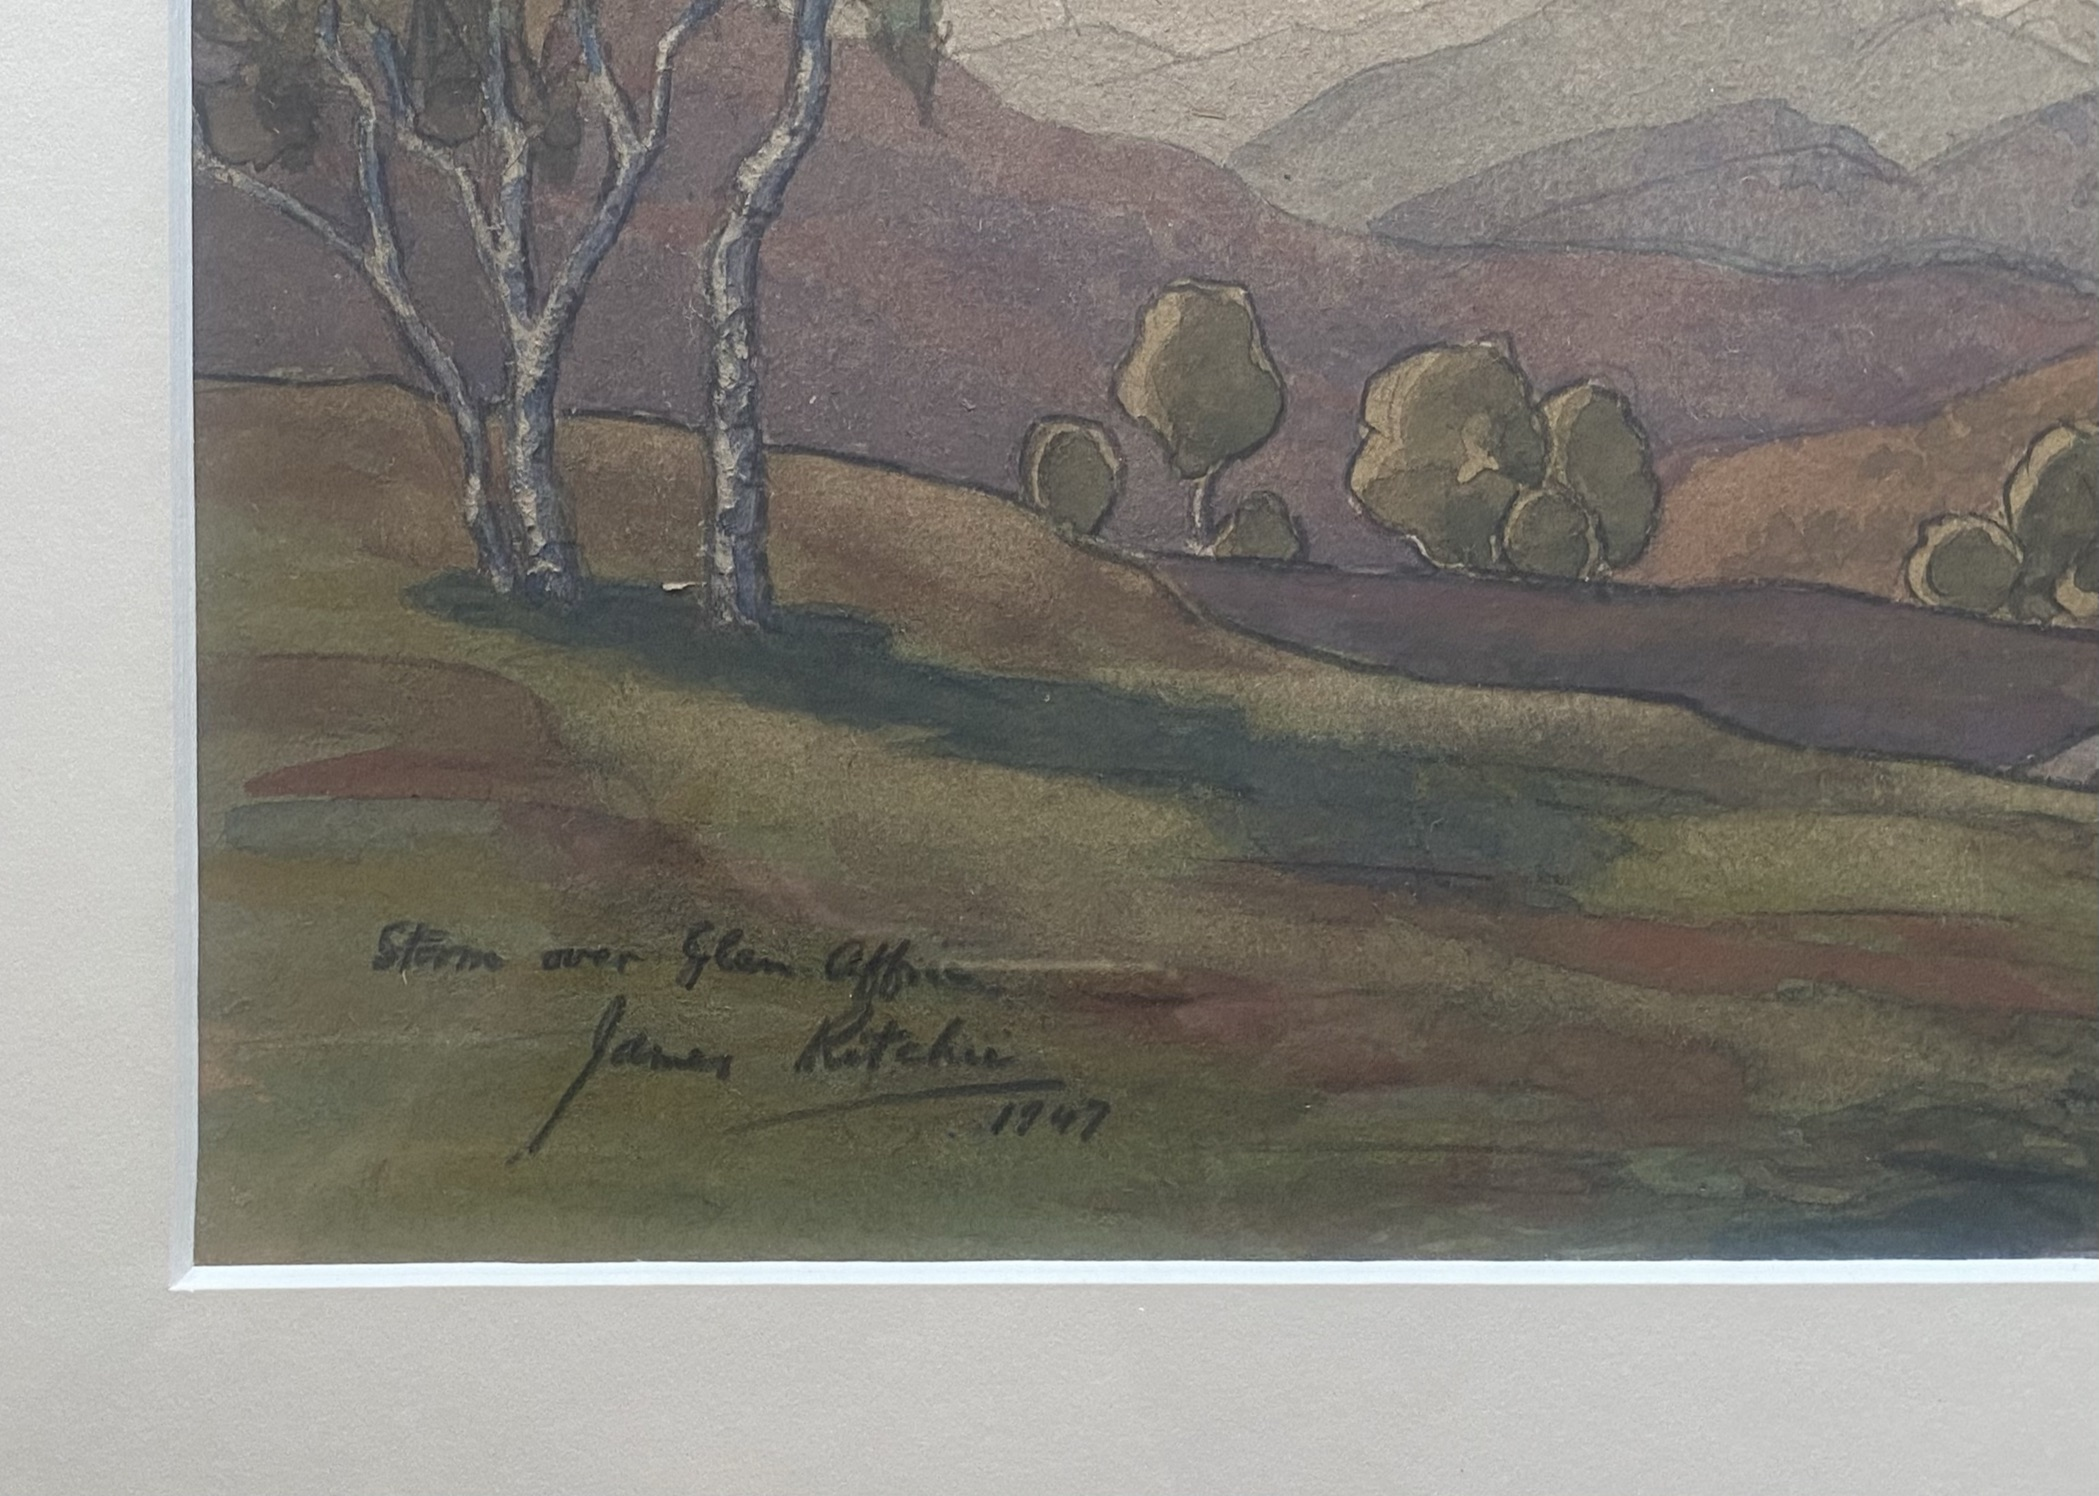 """John Ritchie (Scottish) signed watercolour """"Storm over the Glen"""" - Image 3 of 3"""